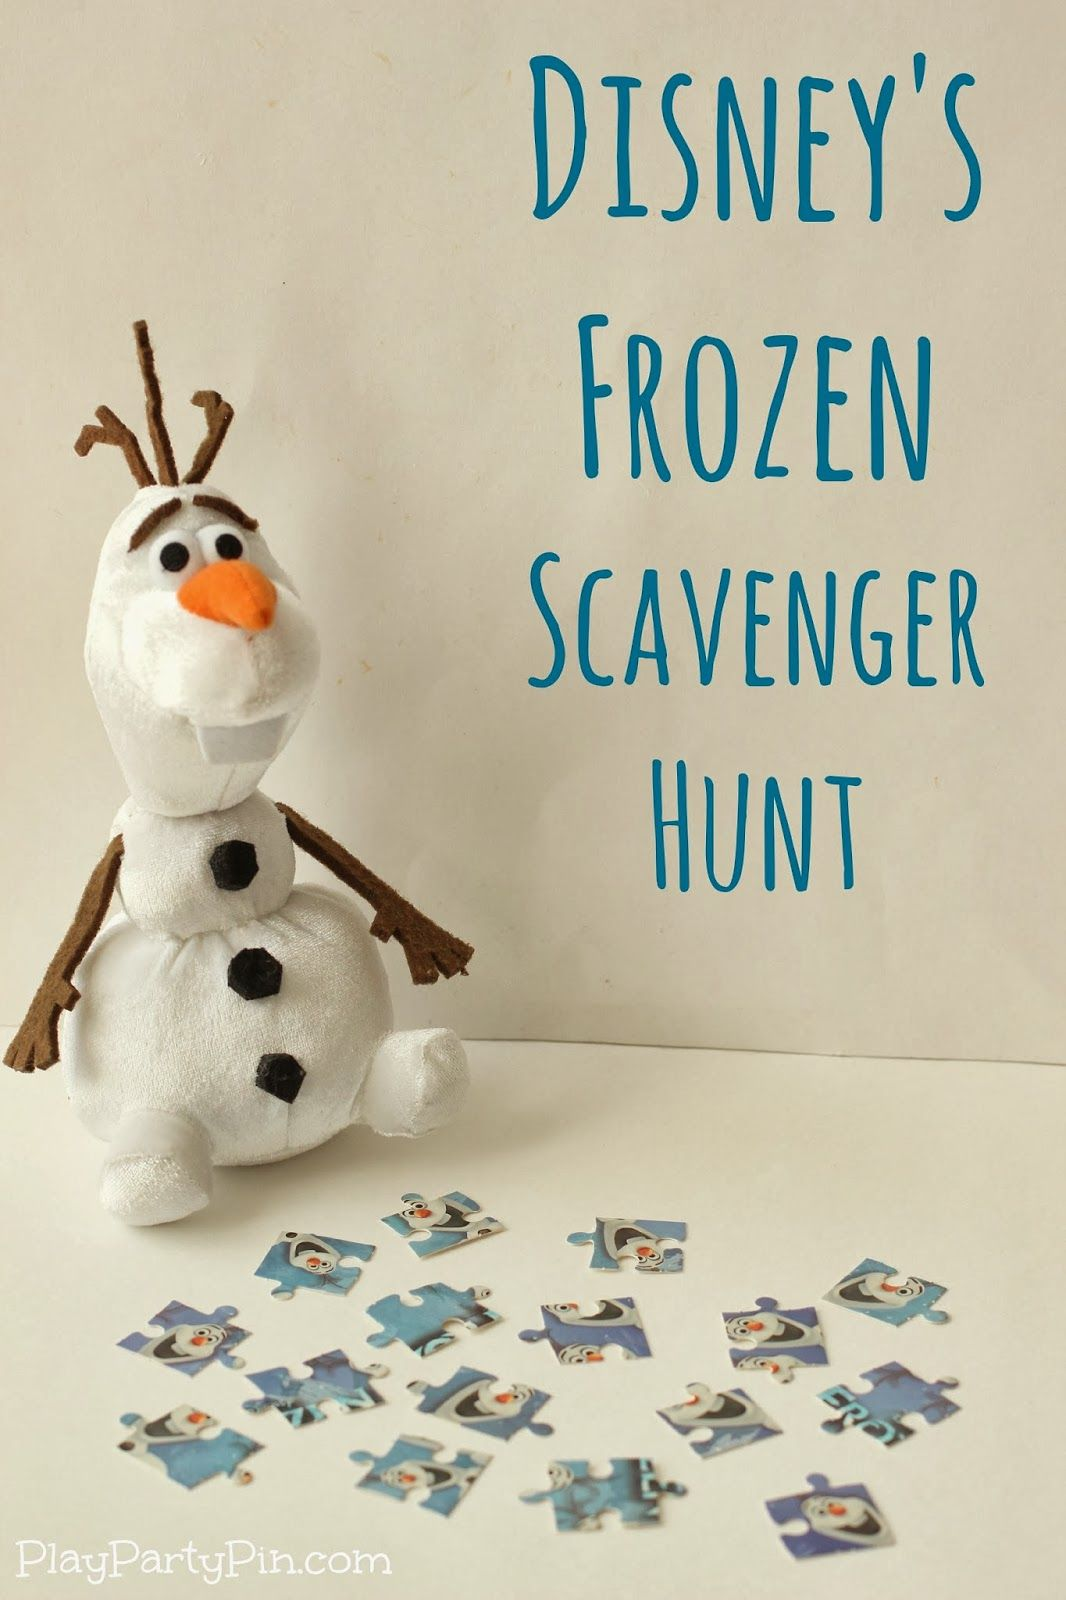 Disneys FROZEN scavenger hunt and Frozen party game ideas for kids